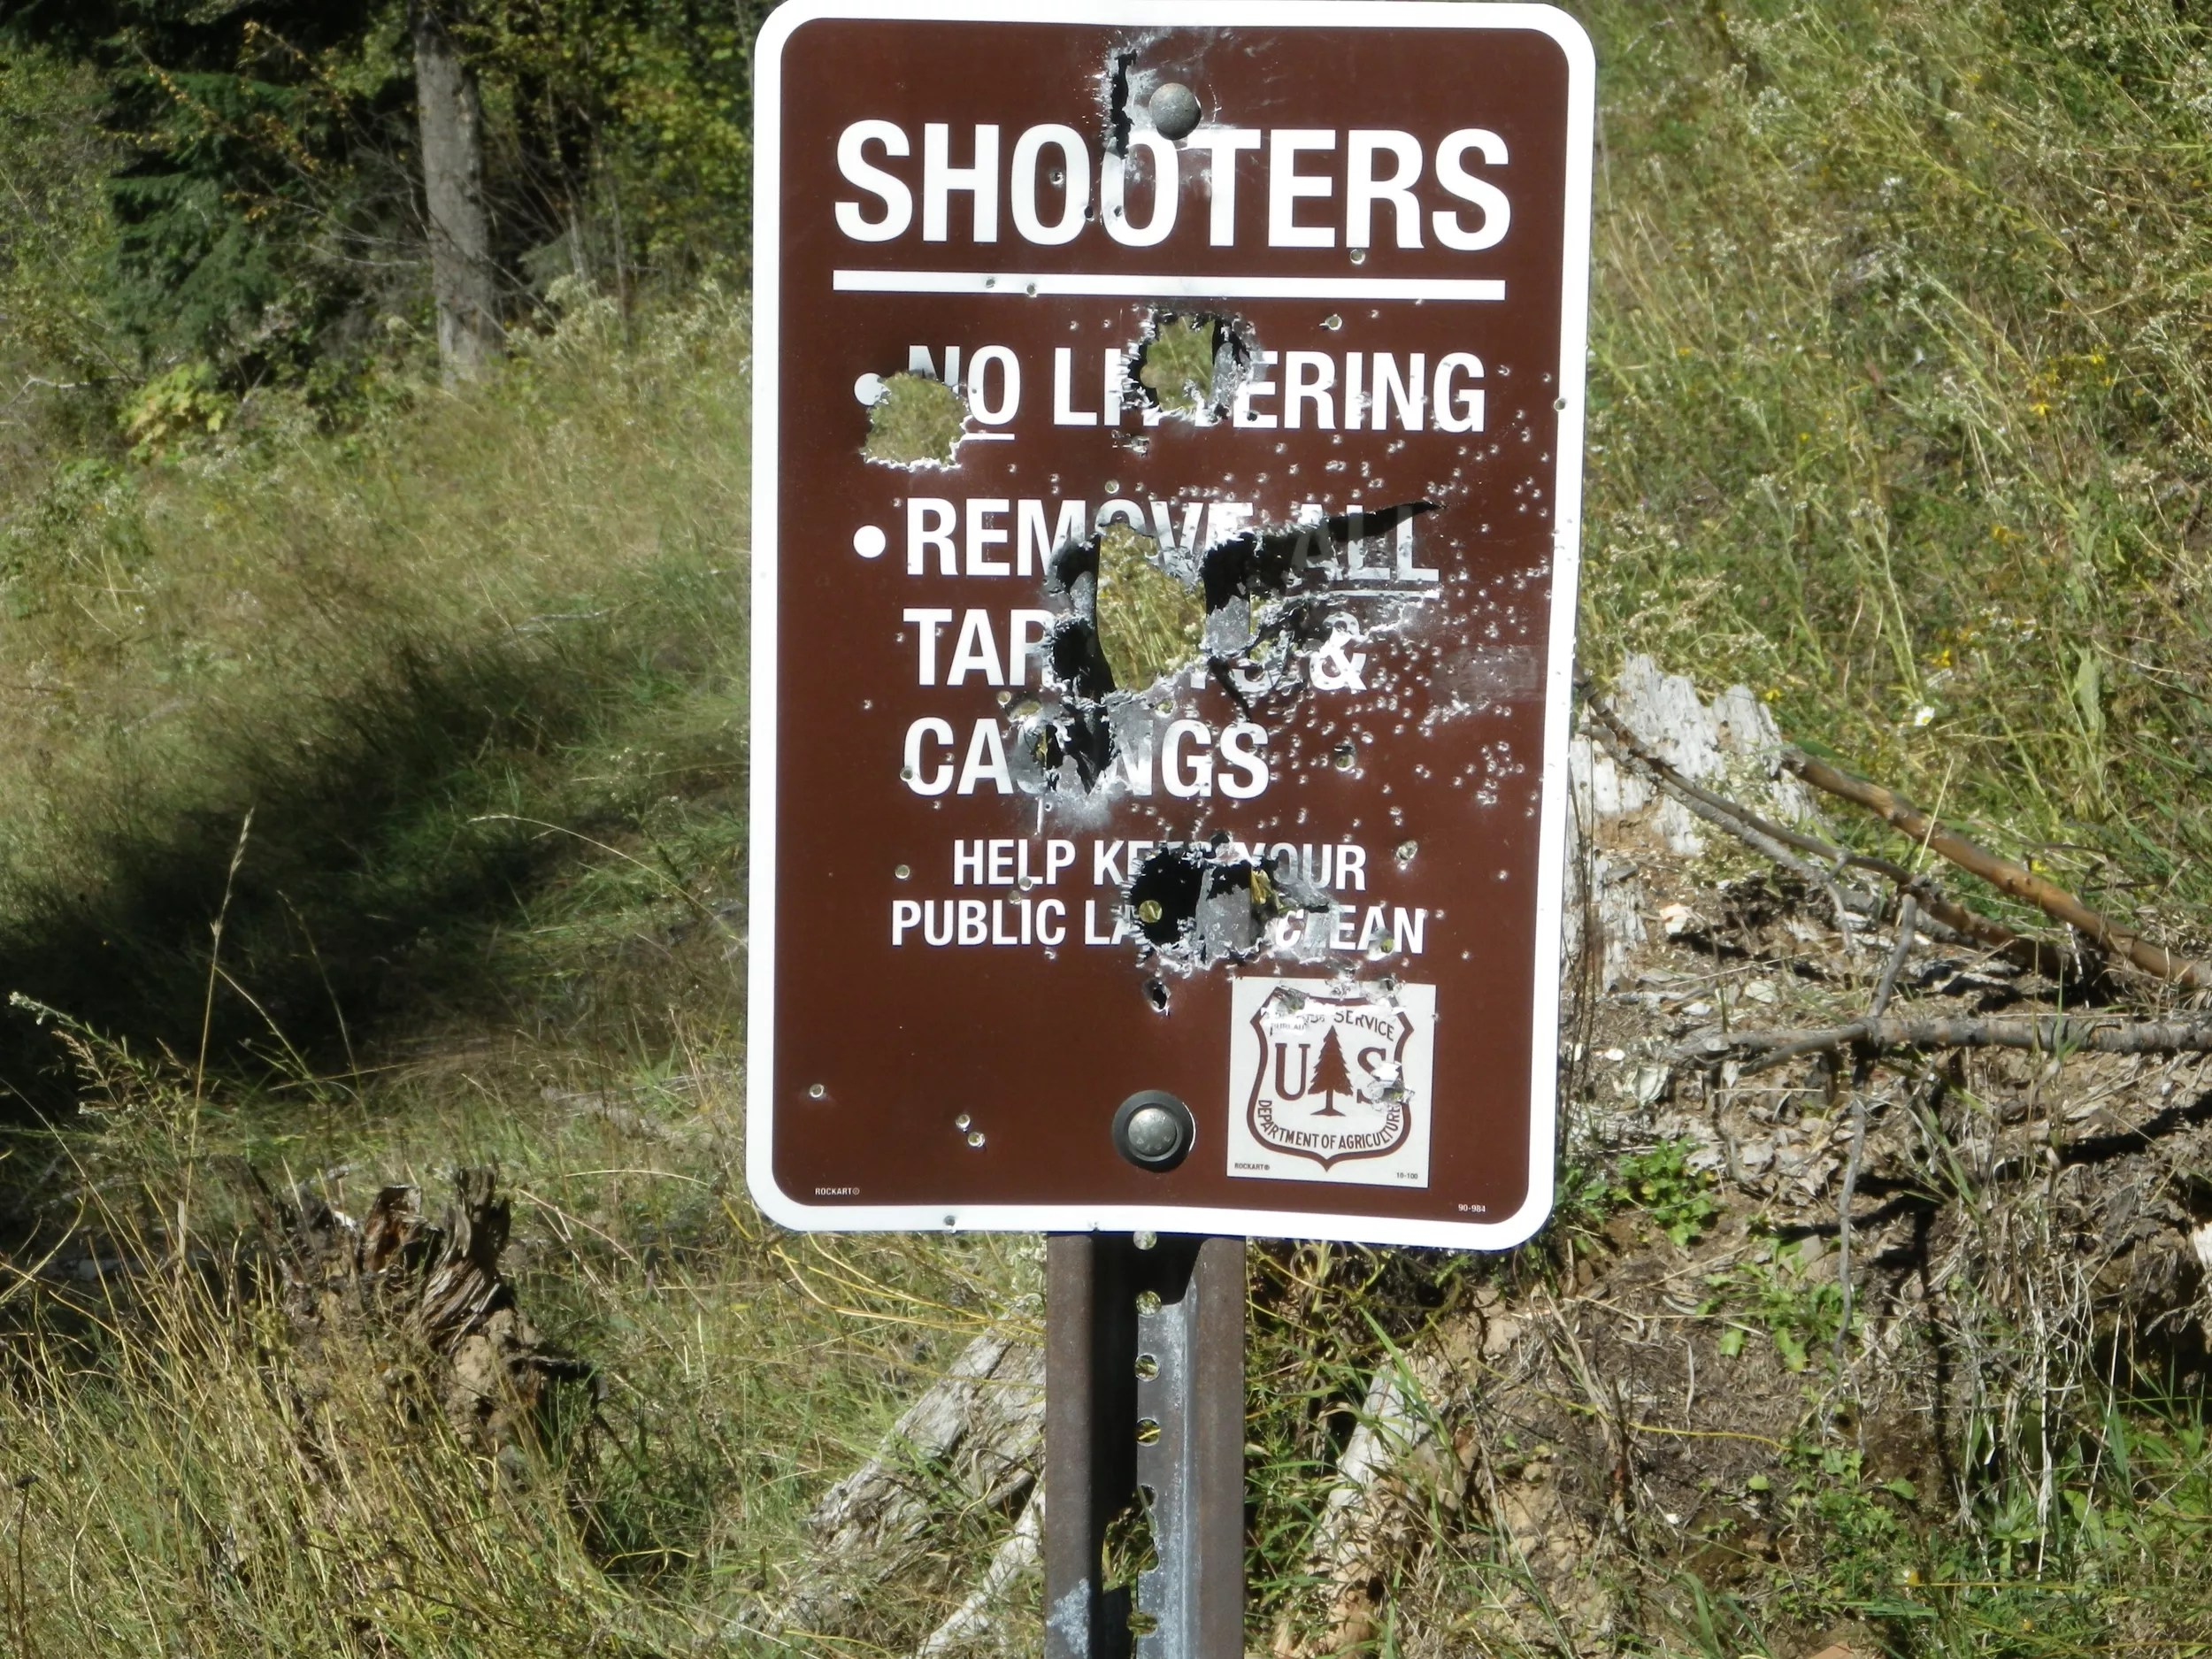 Home is a 2 bed, 2.0 bath property. Shooters Trash Forest Service Signs At Hayden Site The Spokesman Review